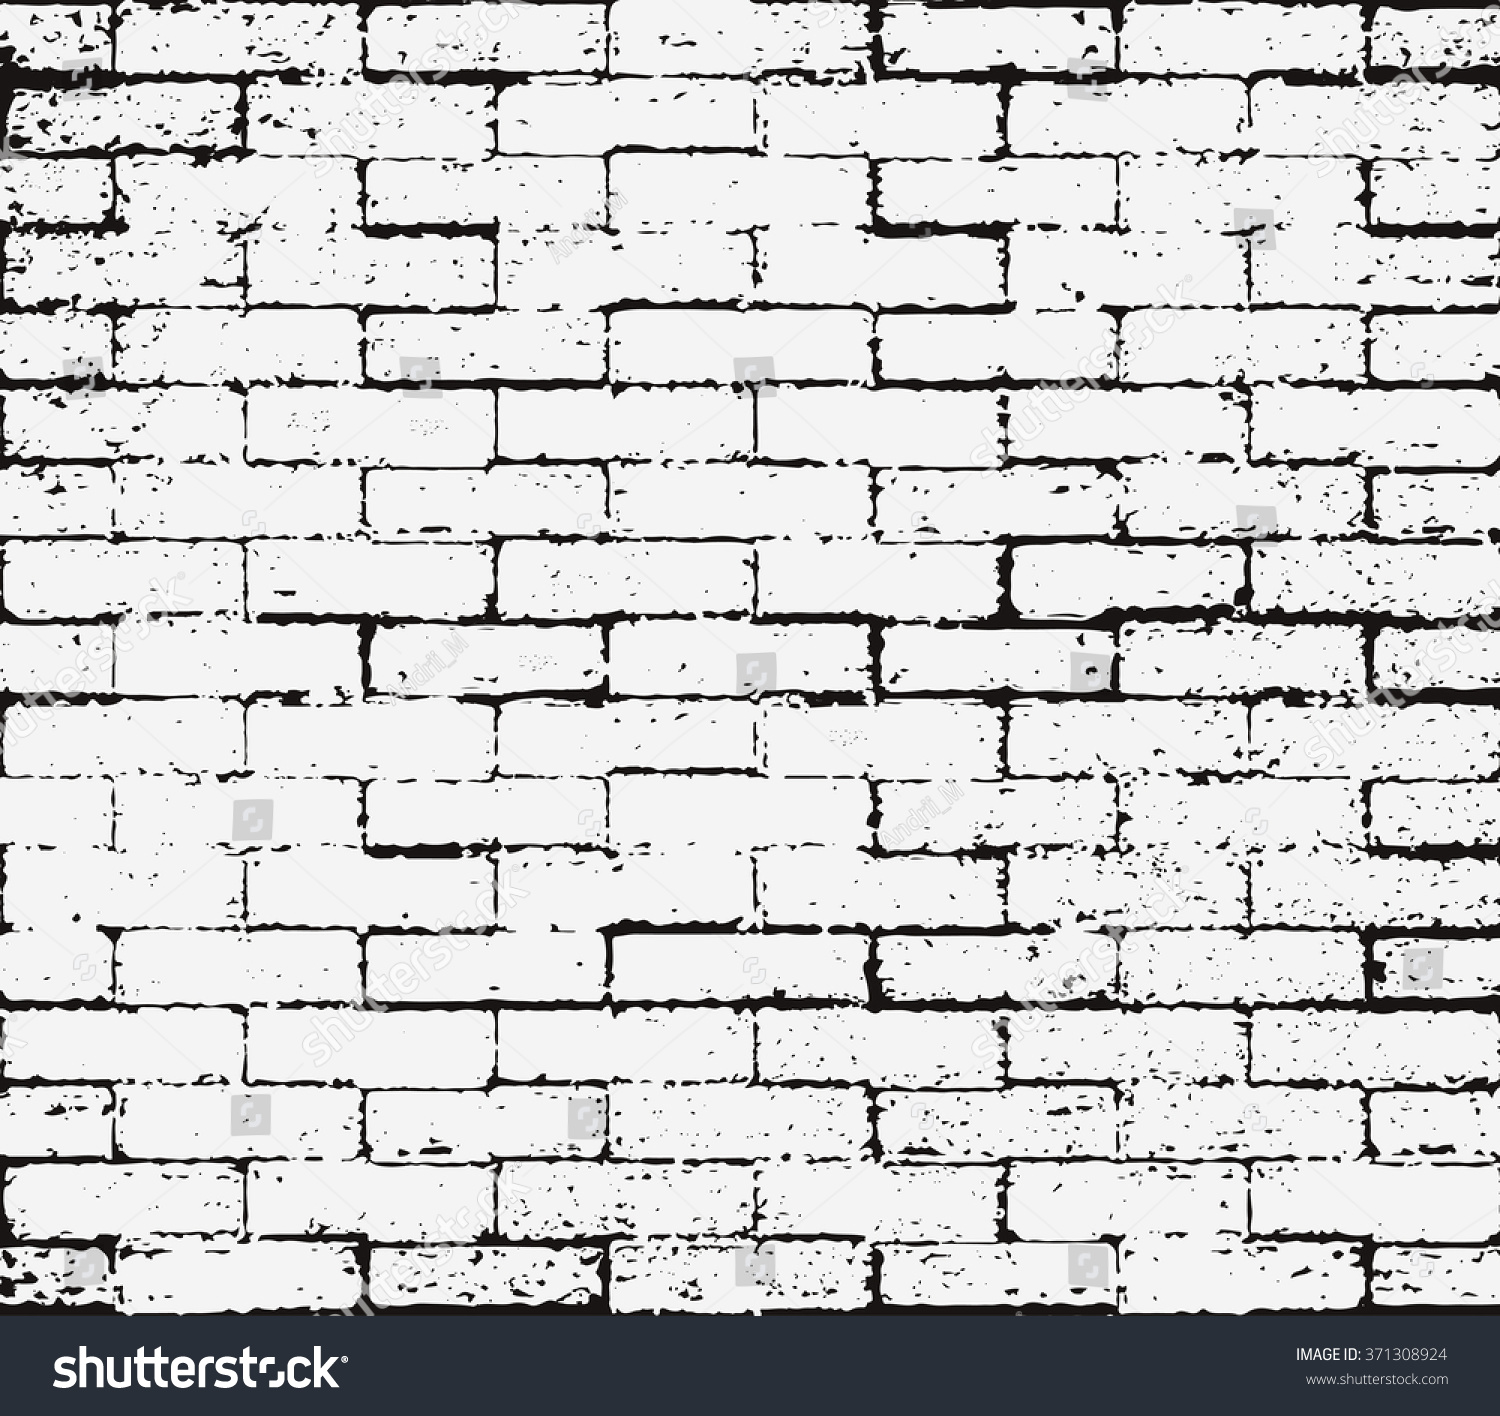 Brick wall overlay Grunge Seamless texture  Abstract Black and White  Distress Texture  Scratch Rust. Royalty free Brick wall overlay Grunge Seamless   371308924 Stock